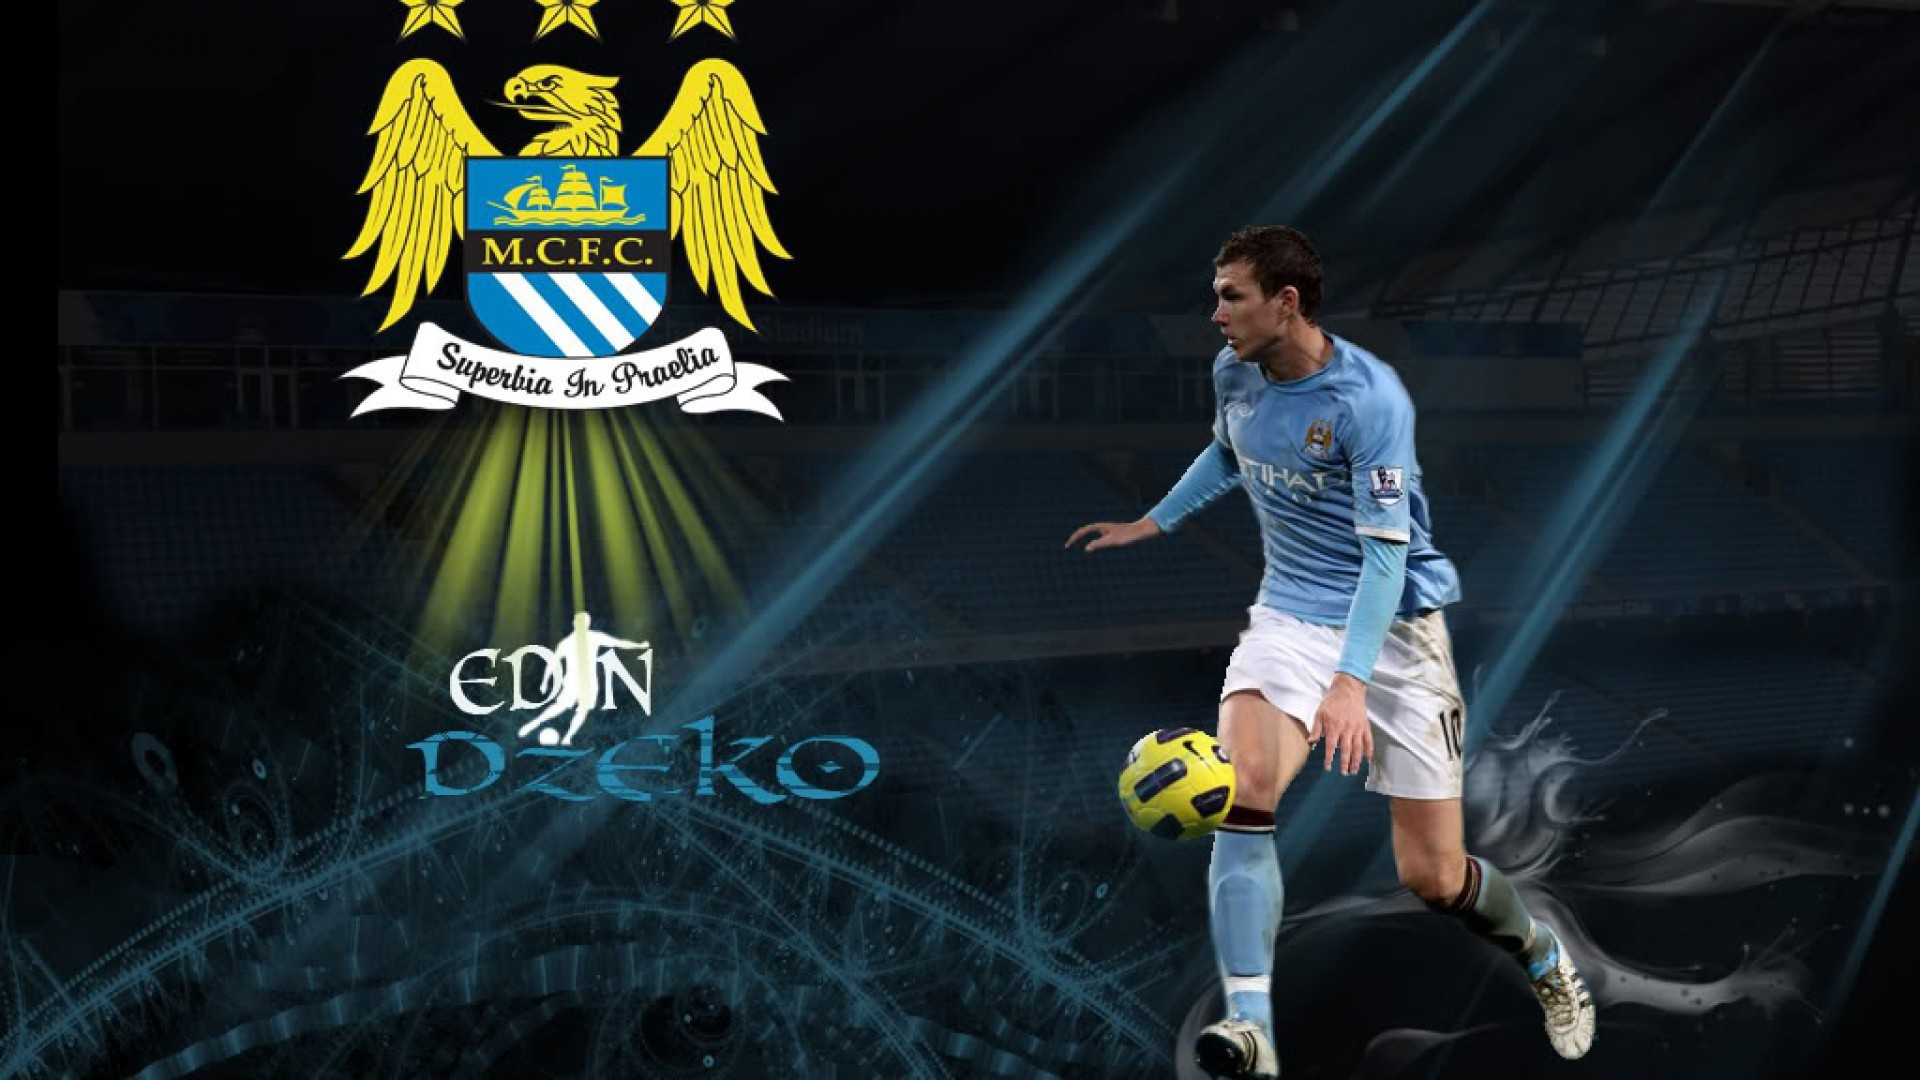 1920x1080 Manchester City wallpapers and images - download wallpapers, pictures .